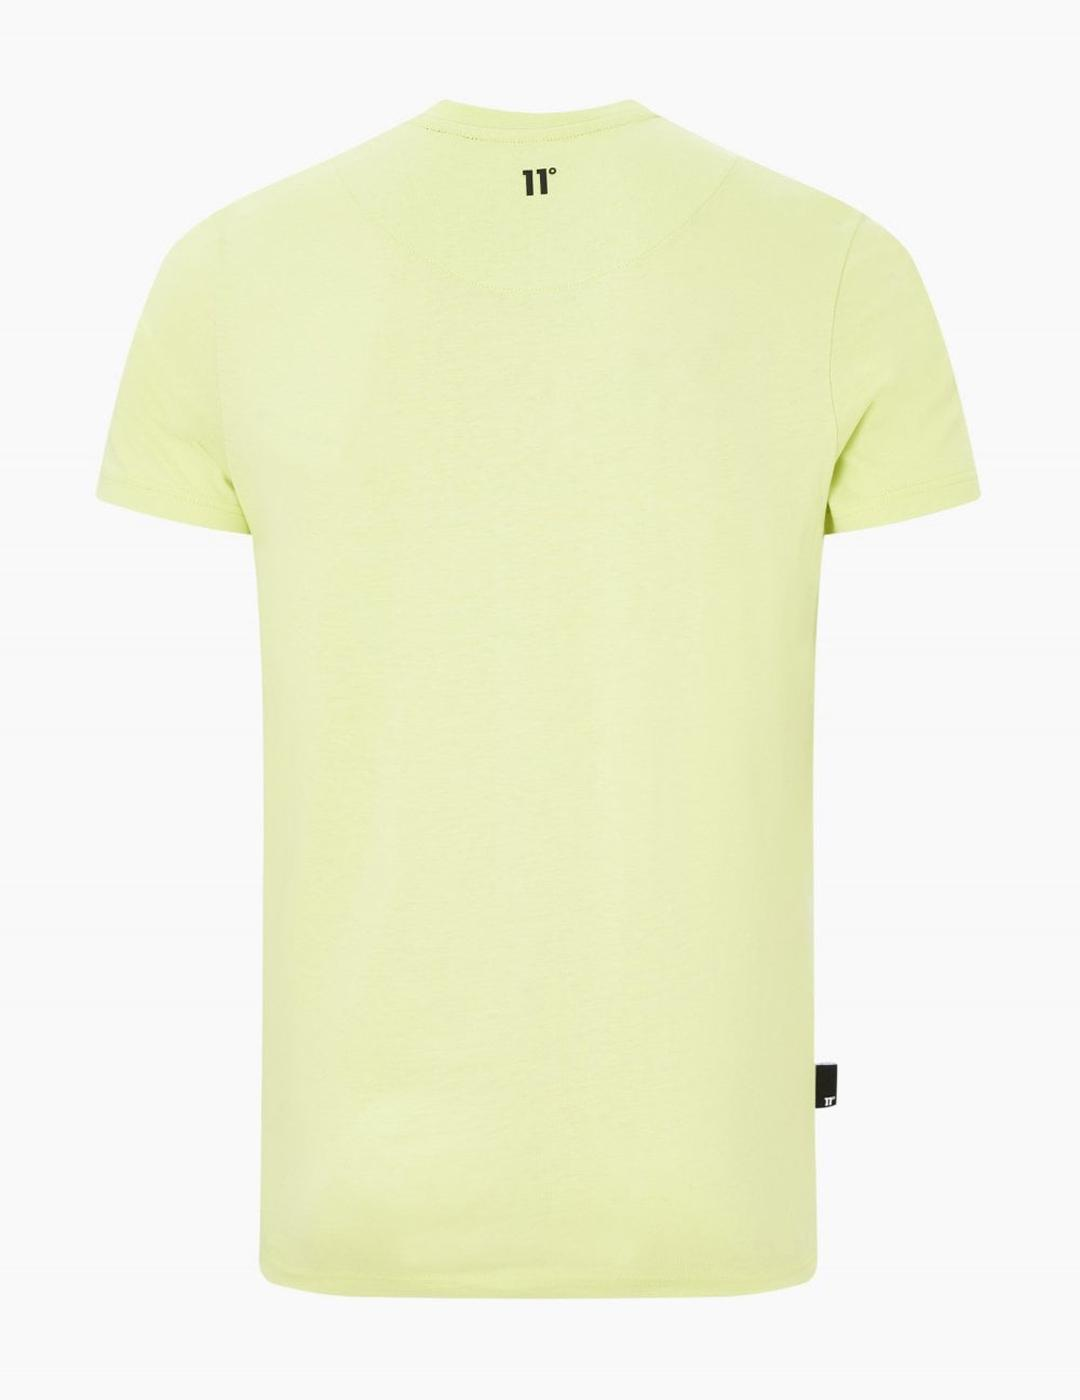 Camiseta Eleven Degrees BLOCK GRAPHIC - Avocado Green